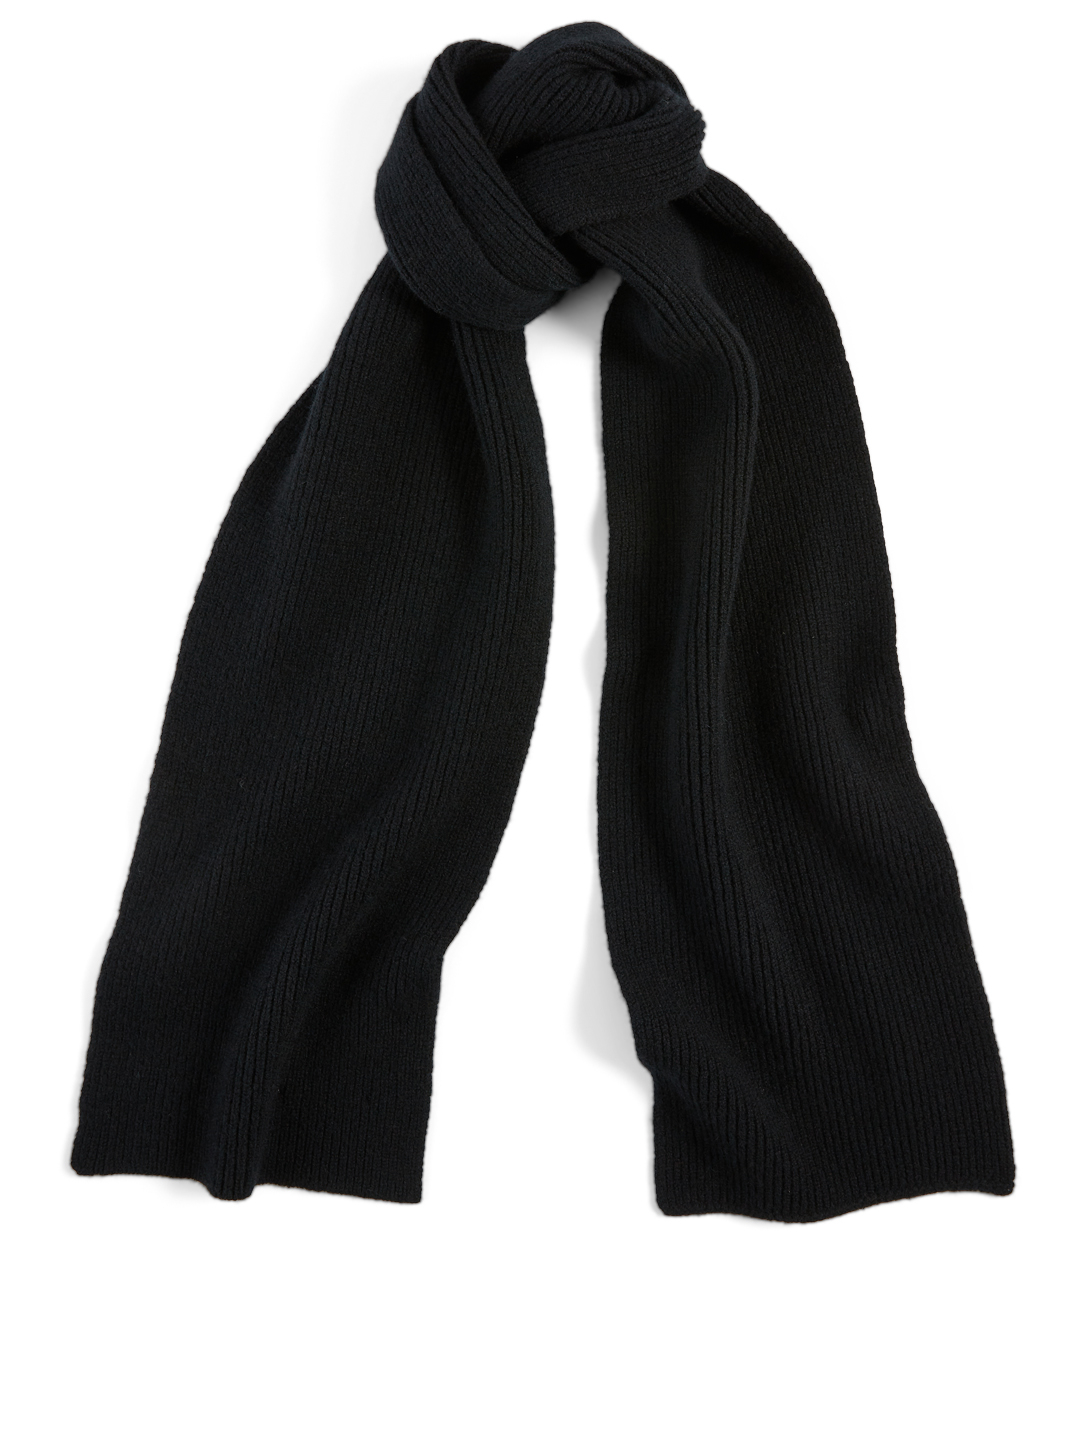 LE BONNET Ribbed Wool Scarf Women's Black